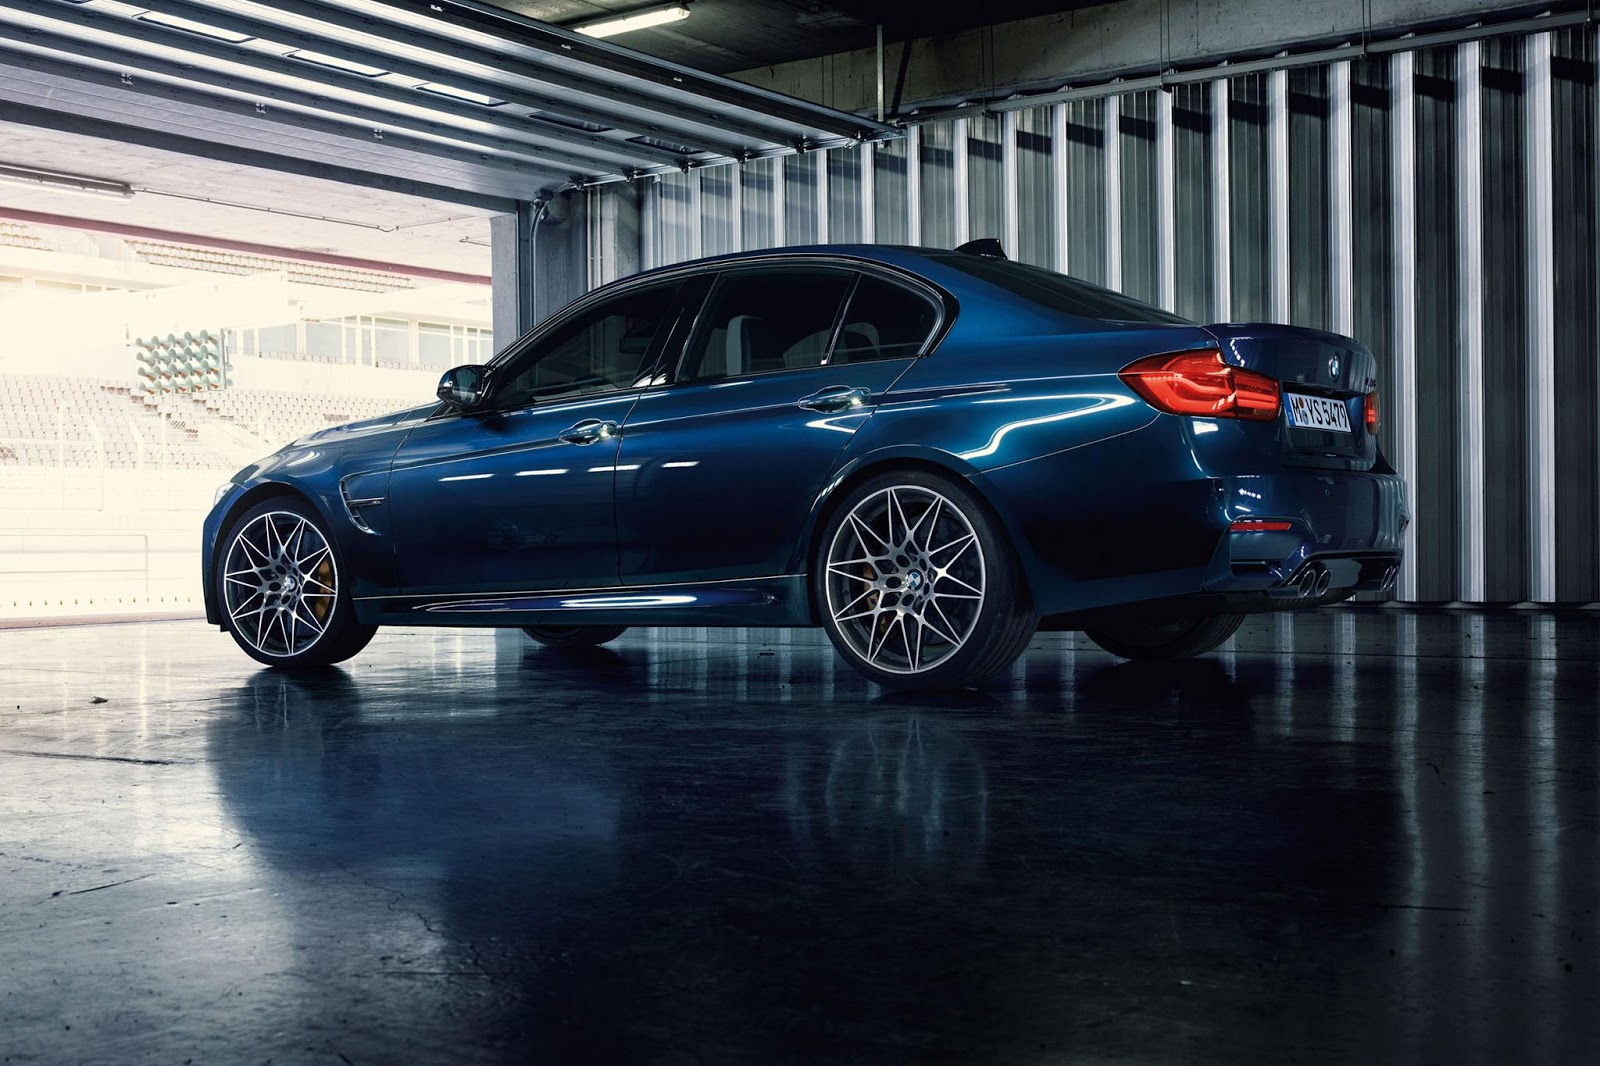 2018 bmw f80 m3. unique 2018 f80 bmw m3 gets visual updates inspired by m4 lci image 608977 on 2018 bmw f80 m3 s